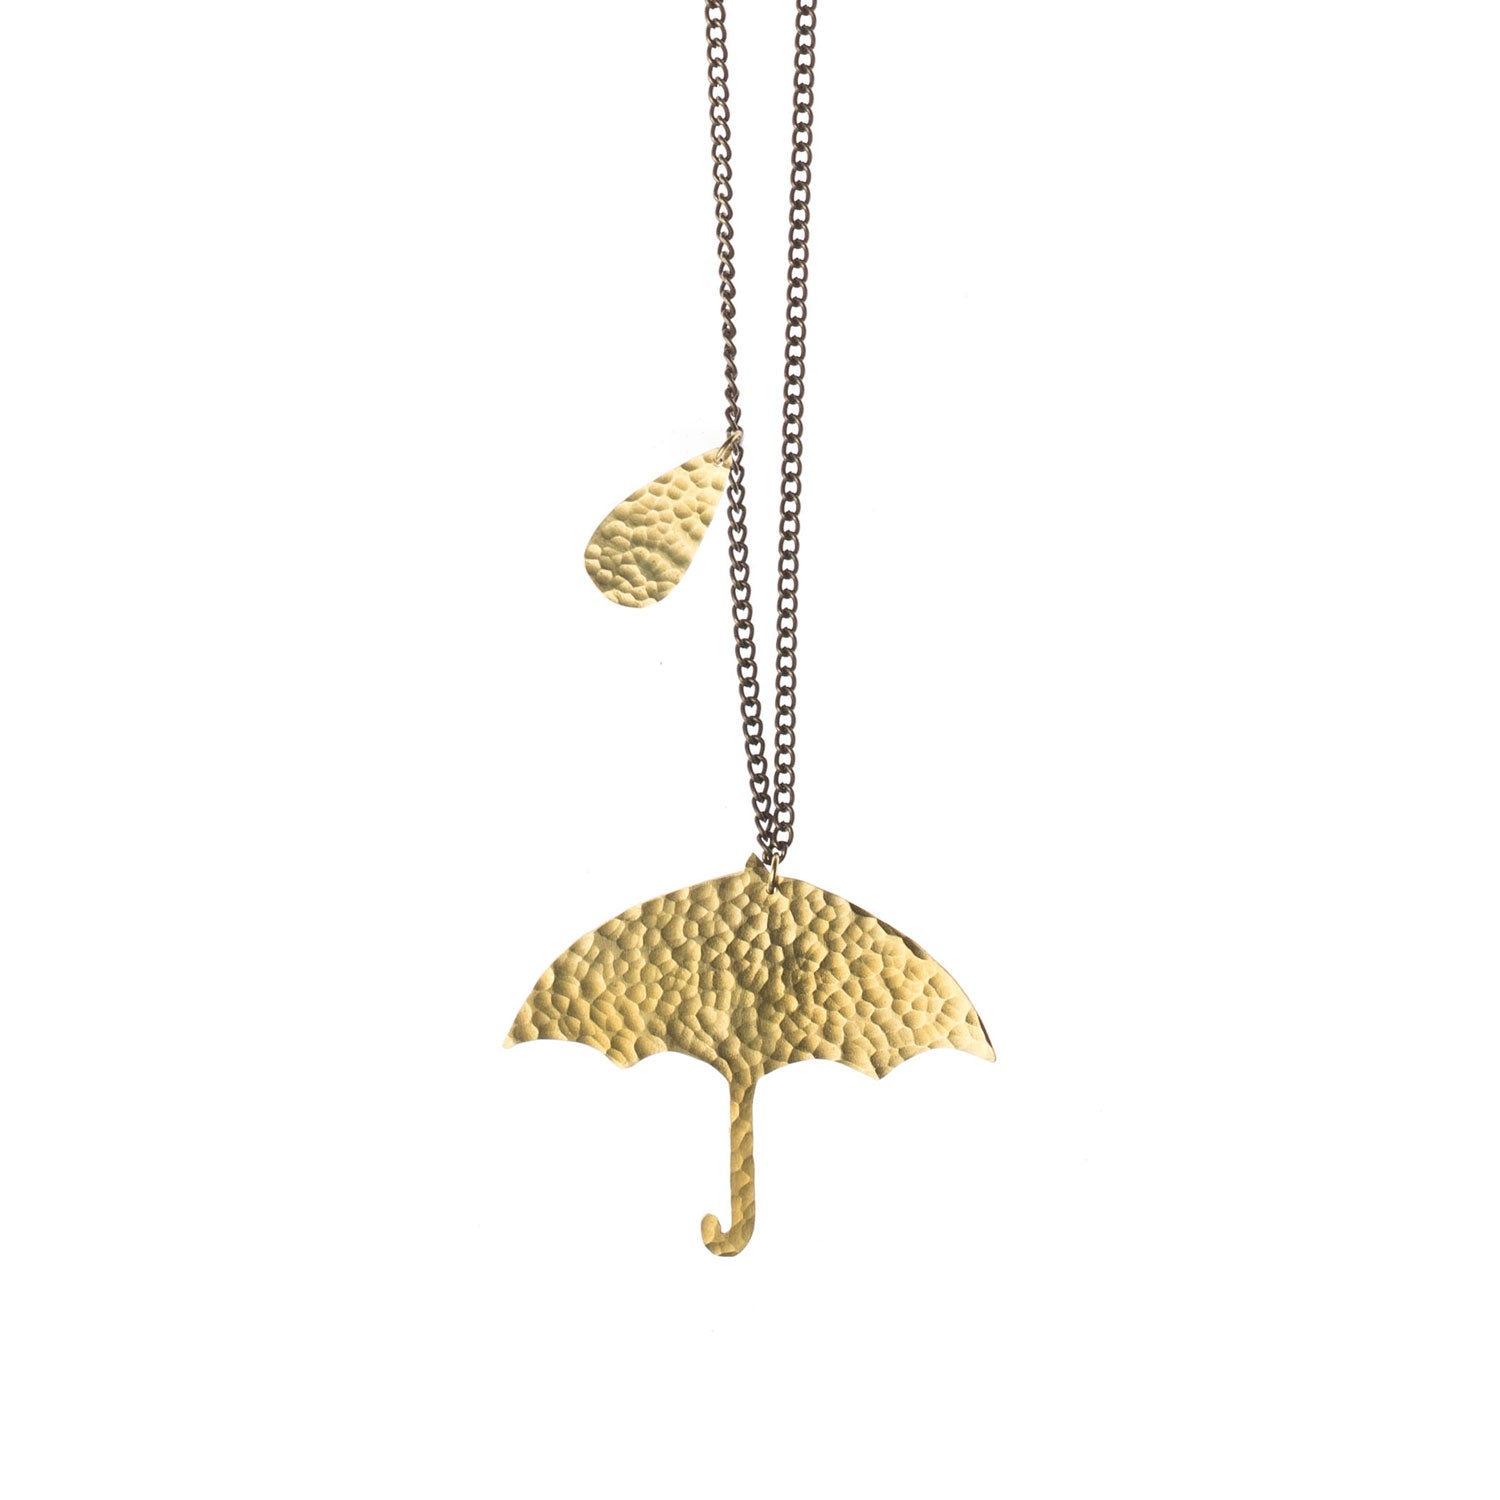 Hammered Brass Umbrella Pendant